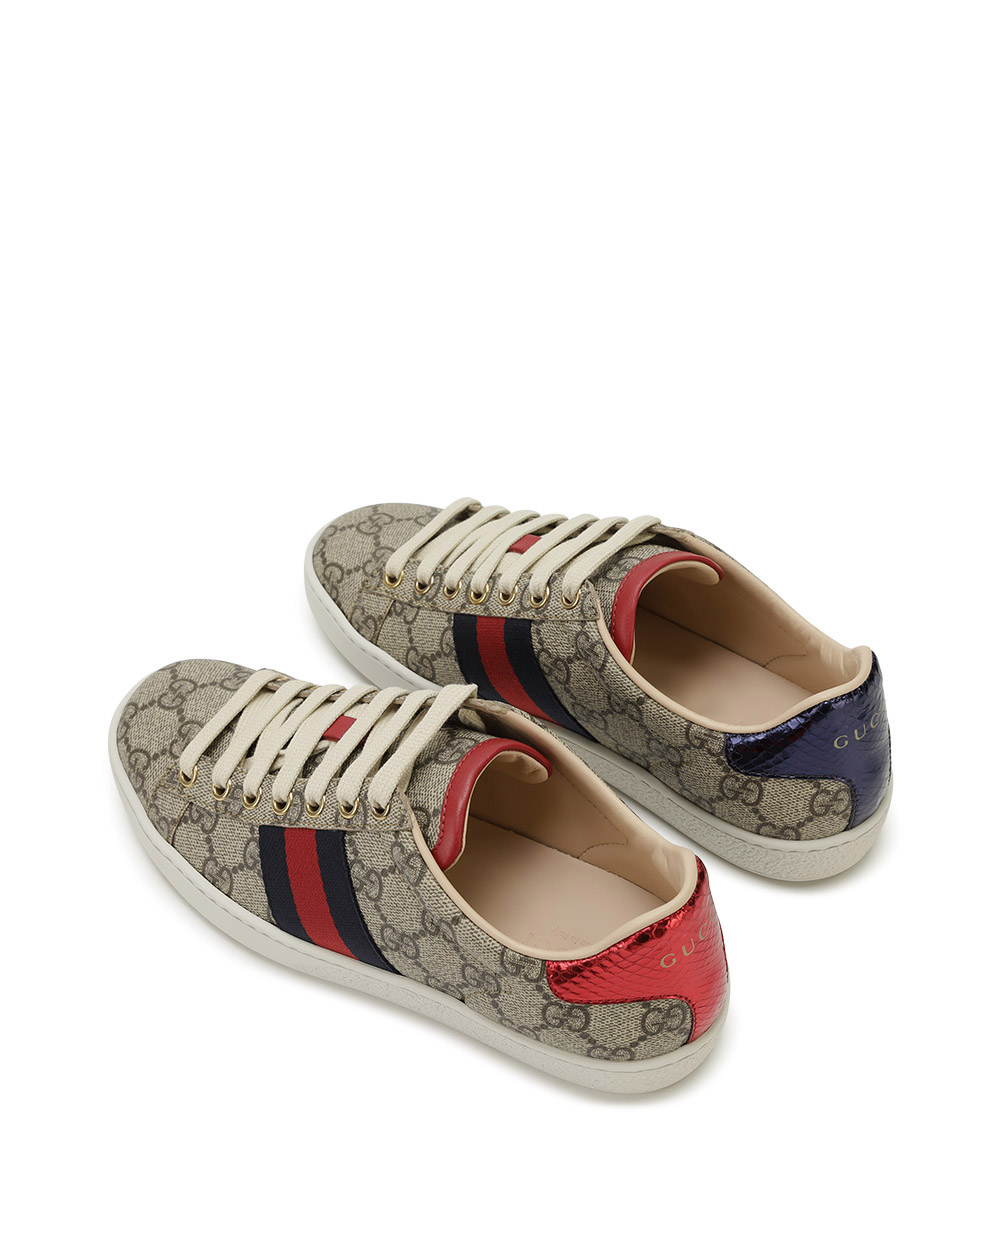 Ace Leather Sneakers 2